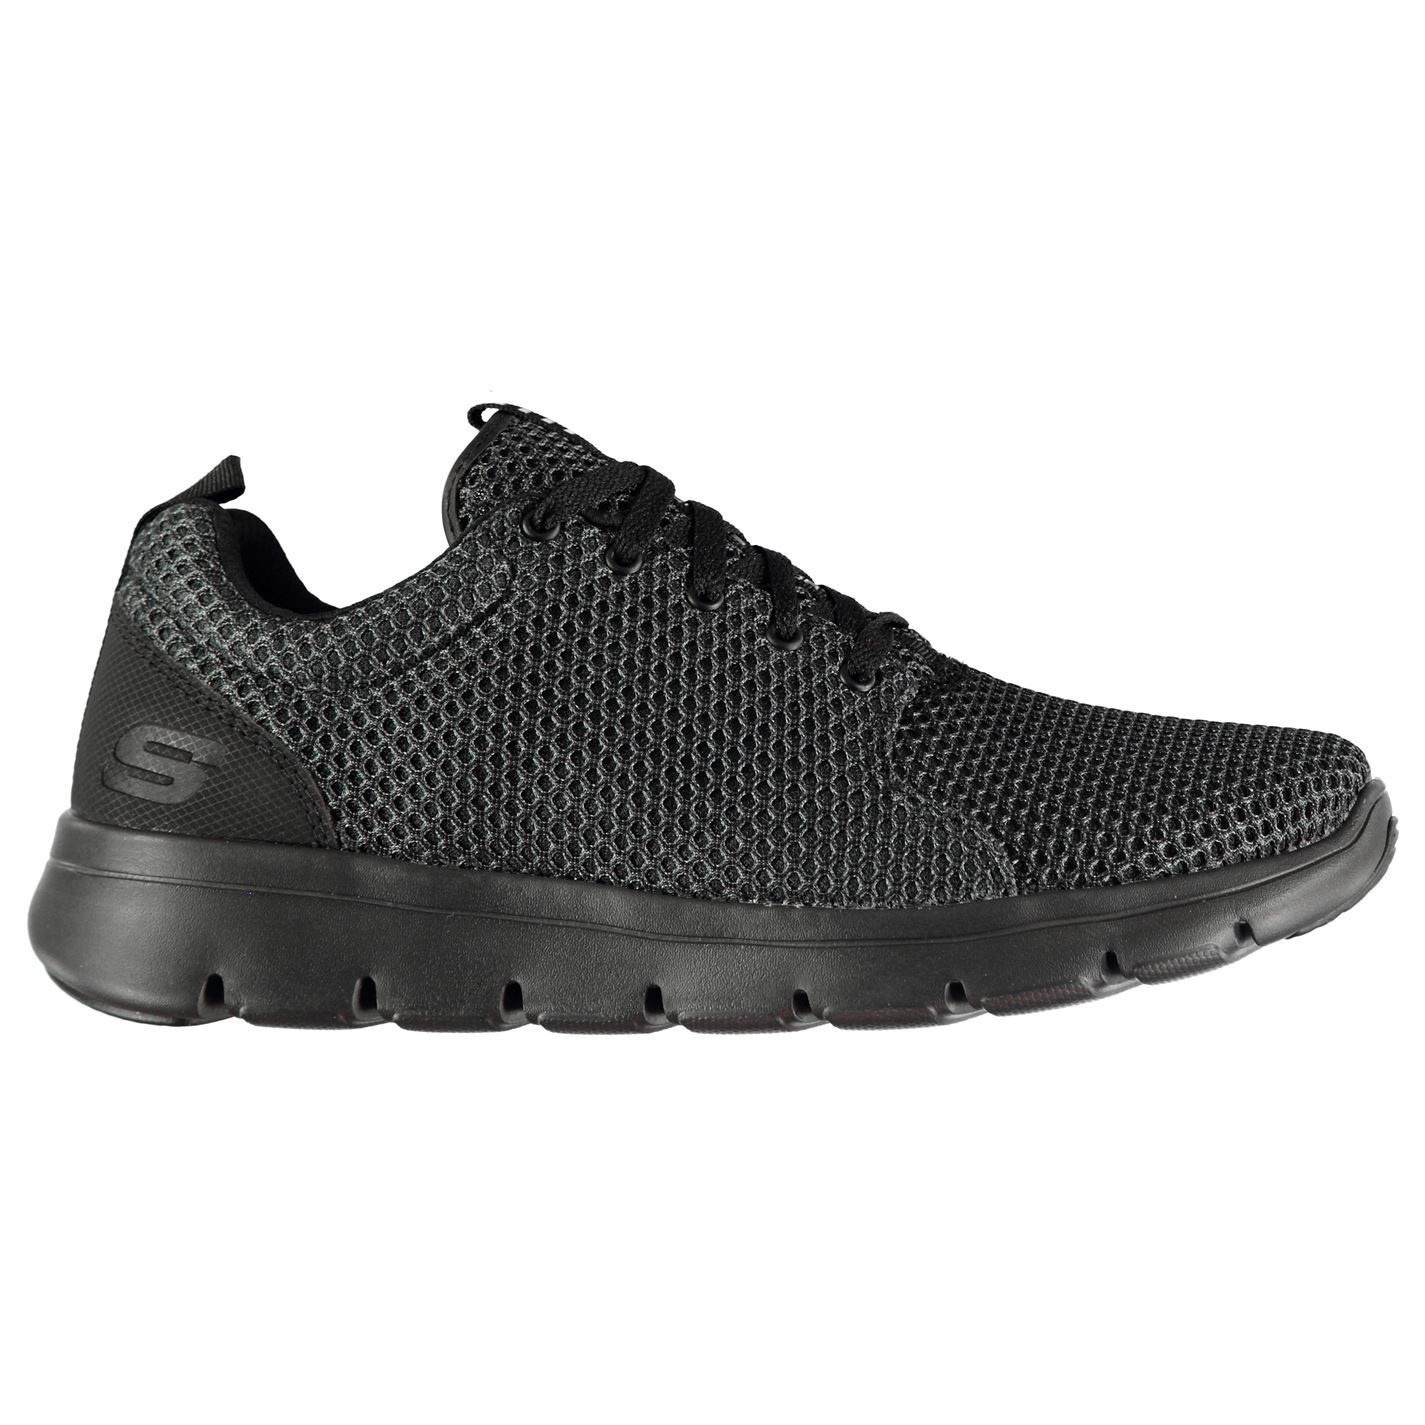 Skechers Marauder Sport Schuhes Fastened  Uomo Gents Runners Laces Fastened Schuhes Ventilated 0281c7